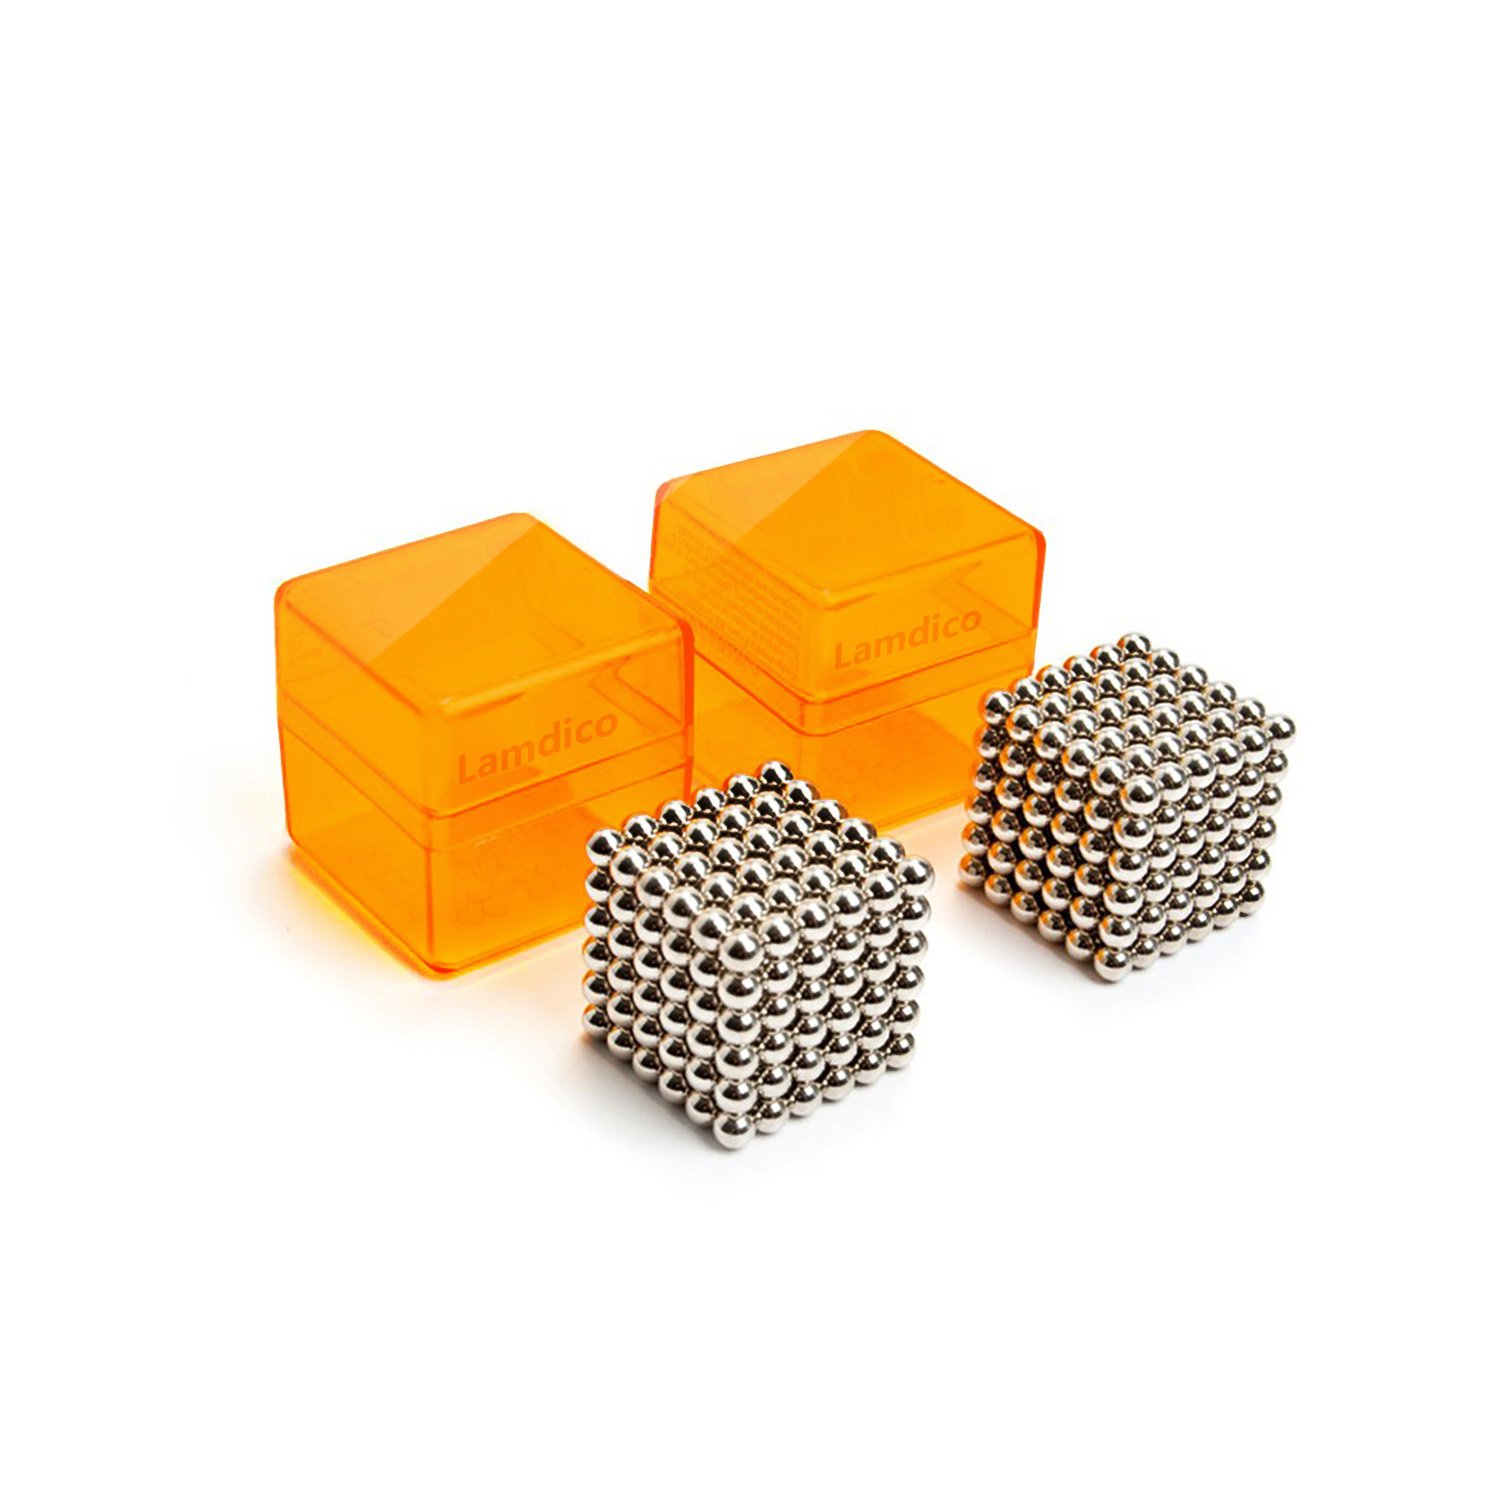 Lamdico Fidget Toy, Rollable Cube, Buildable Sculpture Toy with Portable Carrying Case for Stress Relief by Lamdico (Image #2)